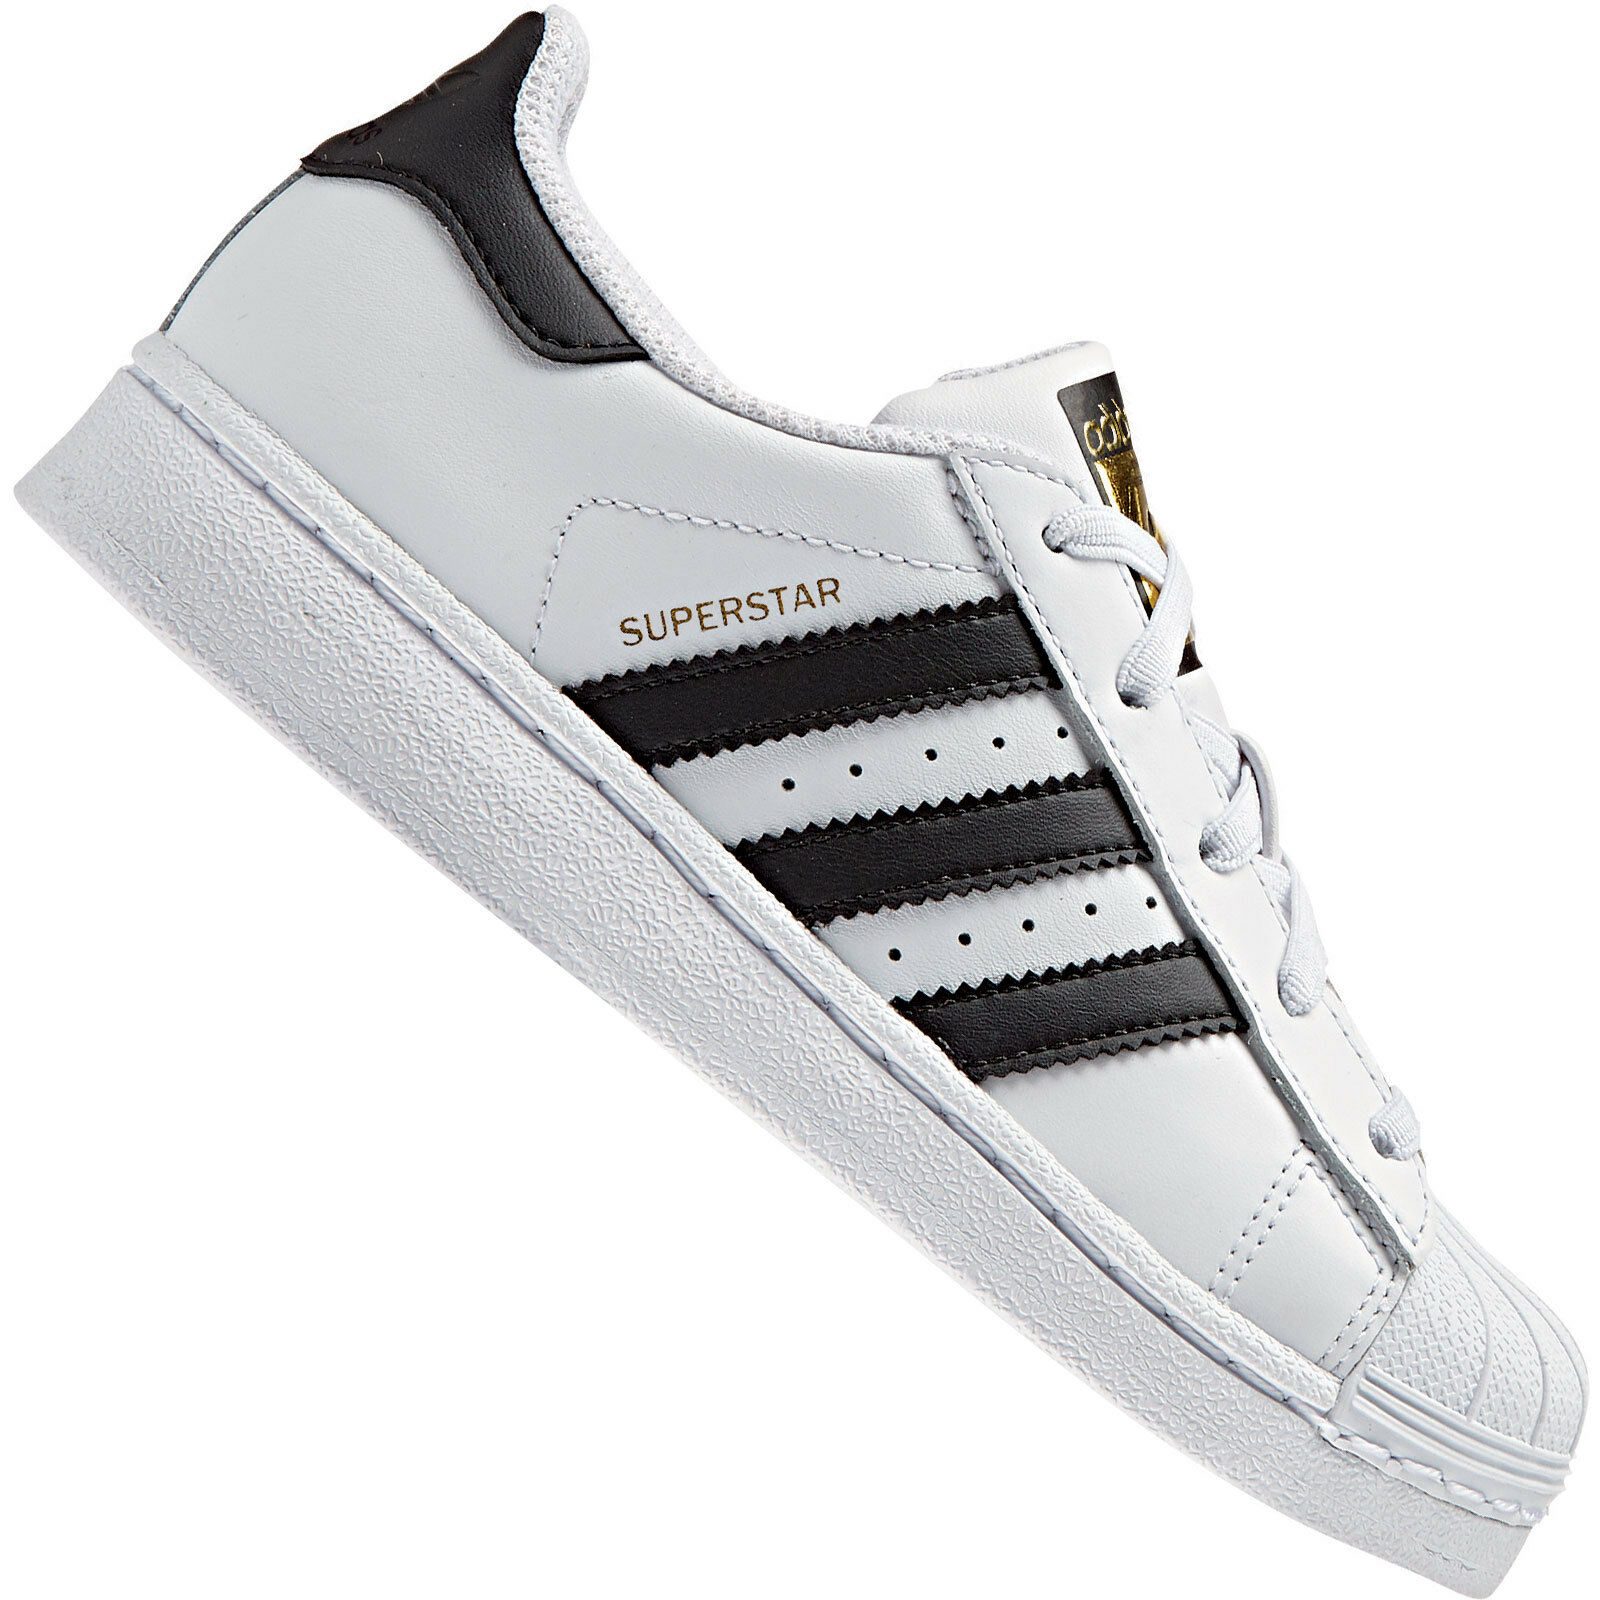 adidas Originals Superstar Junior White Leather Trainers 2.5 UK   35 ... 80705fd41